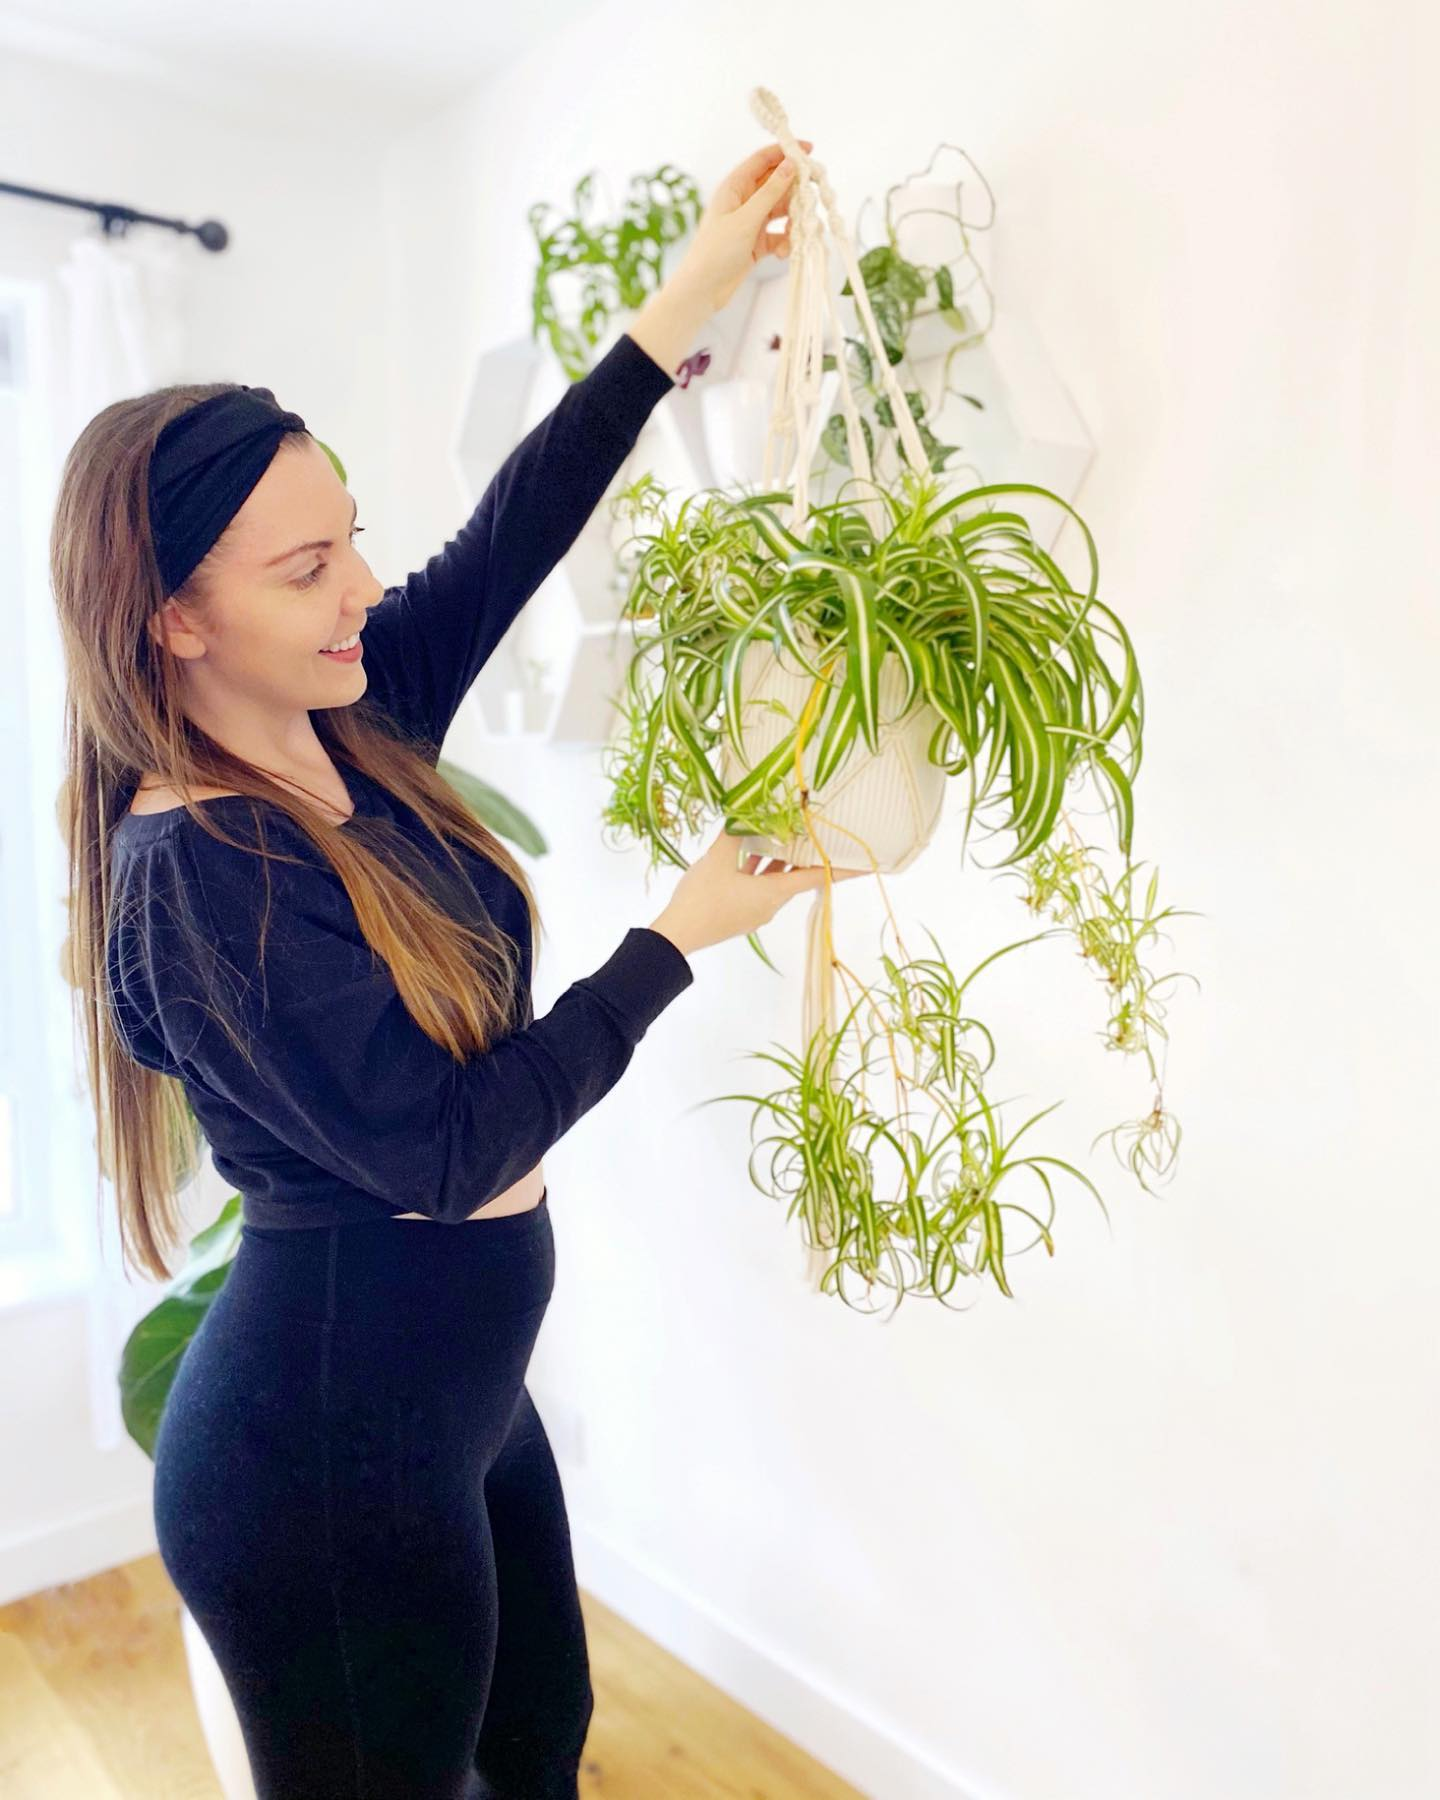 How To Keep Your Houseplants Happy and Healthy